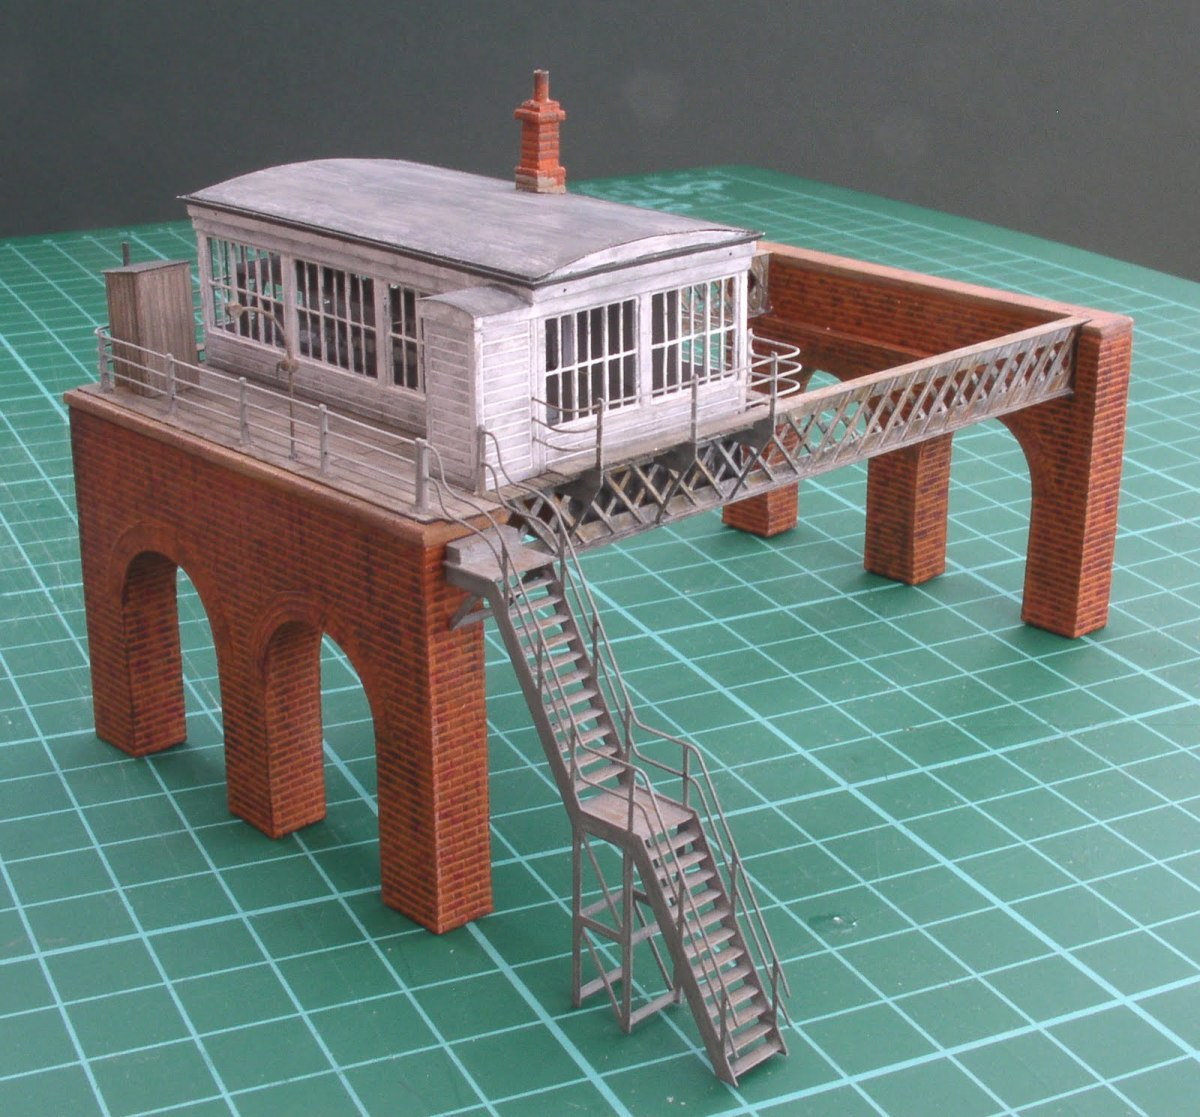 A model of Fencehouses signal cabin in the Tyneside area